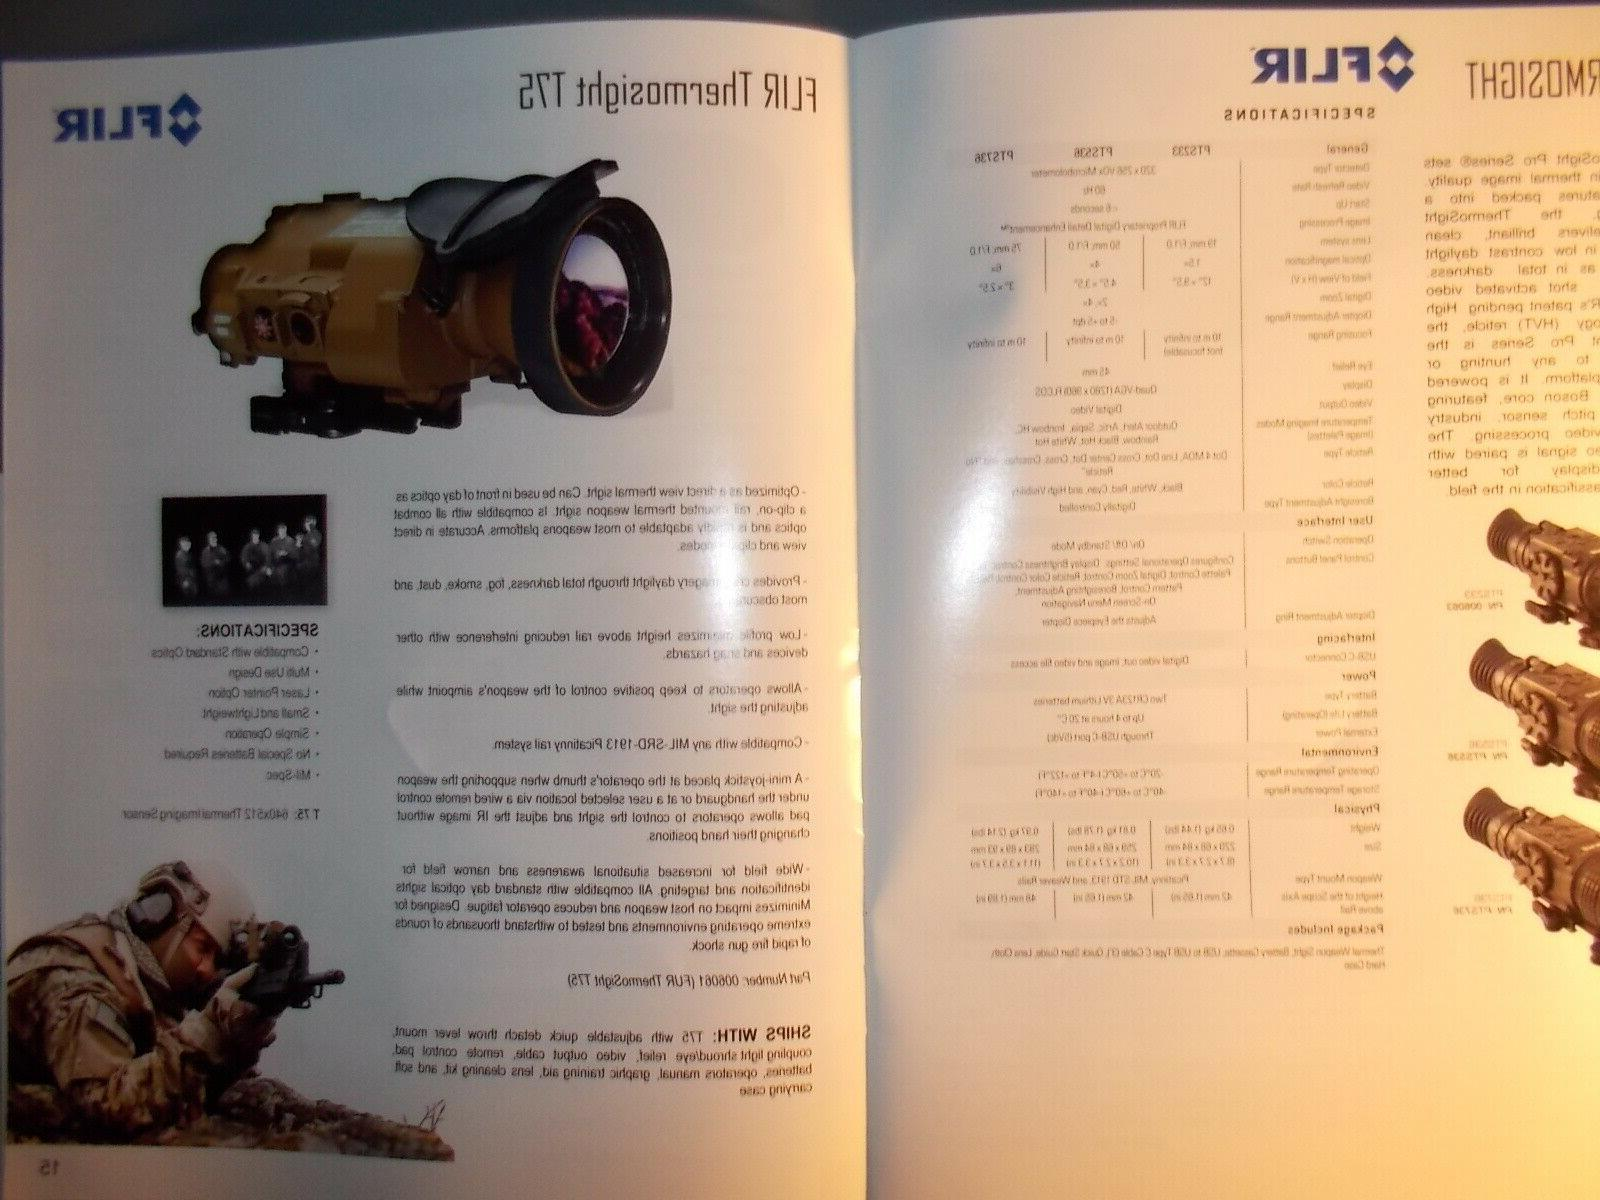 US NIGHT VISION 2018 Catalog CUSTOM-SPORTING PRODUCTS LOOK! USA